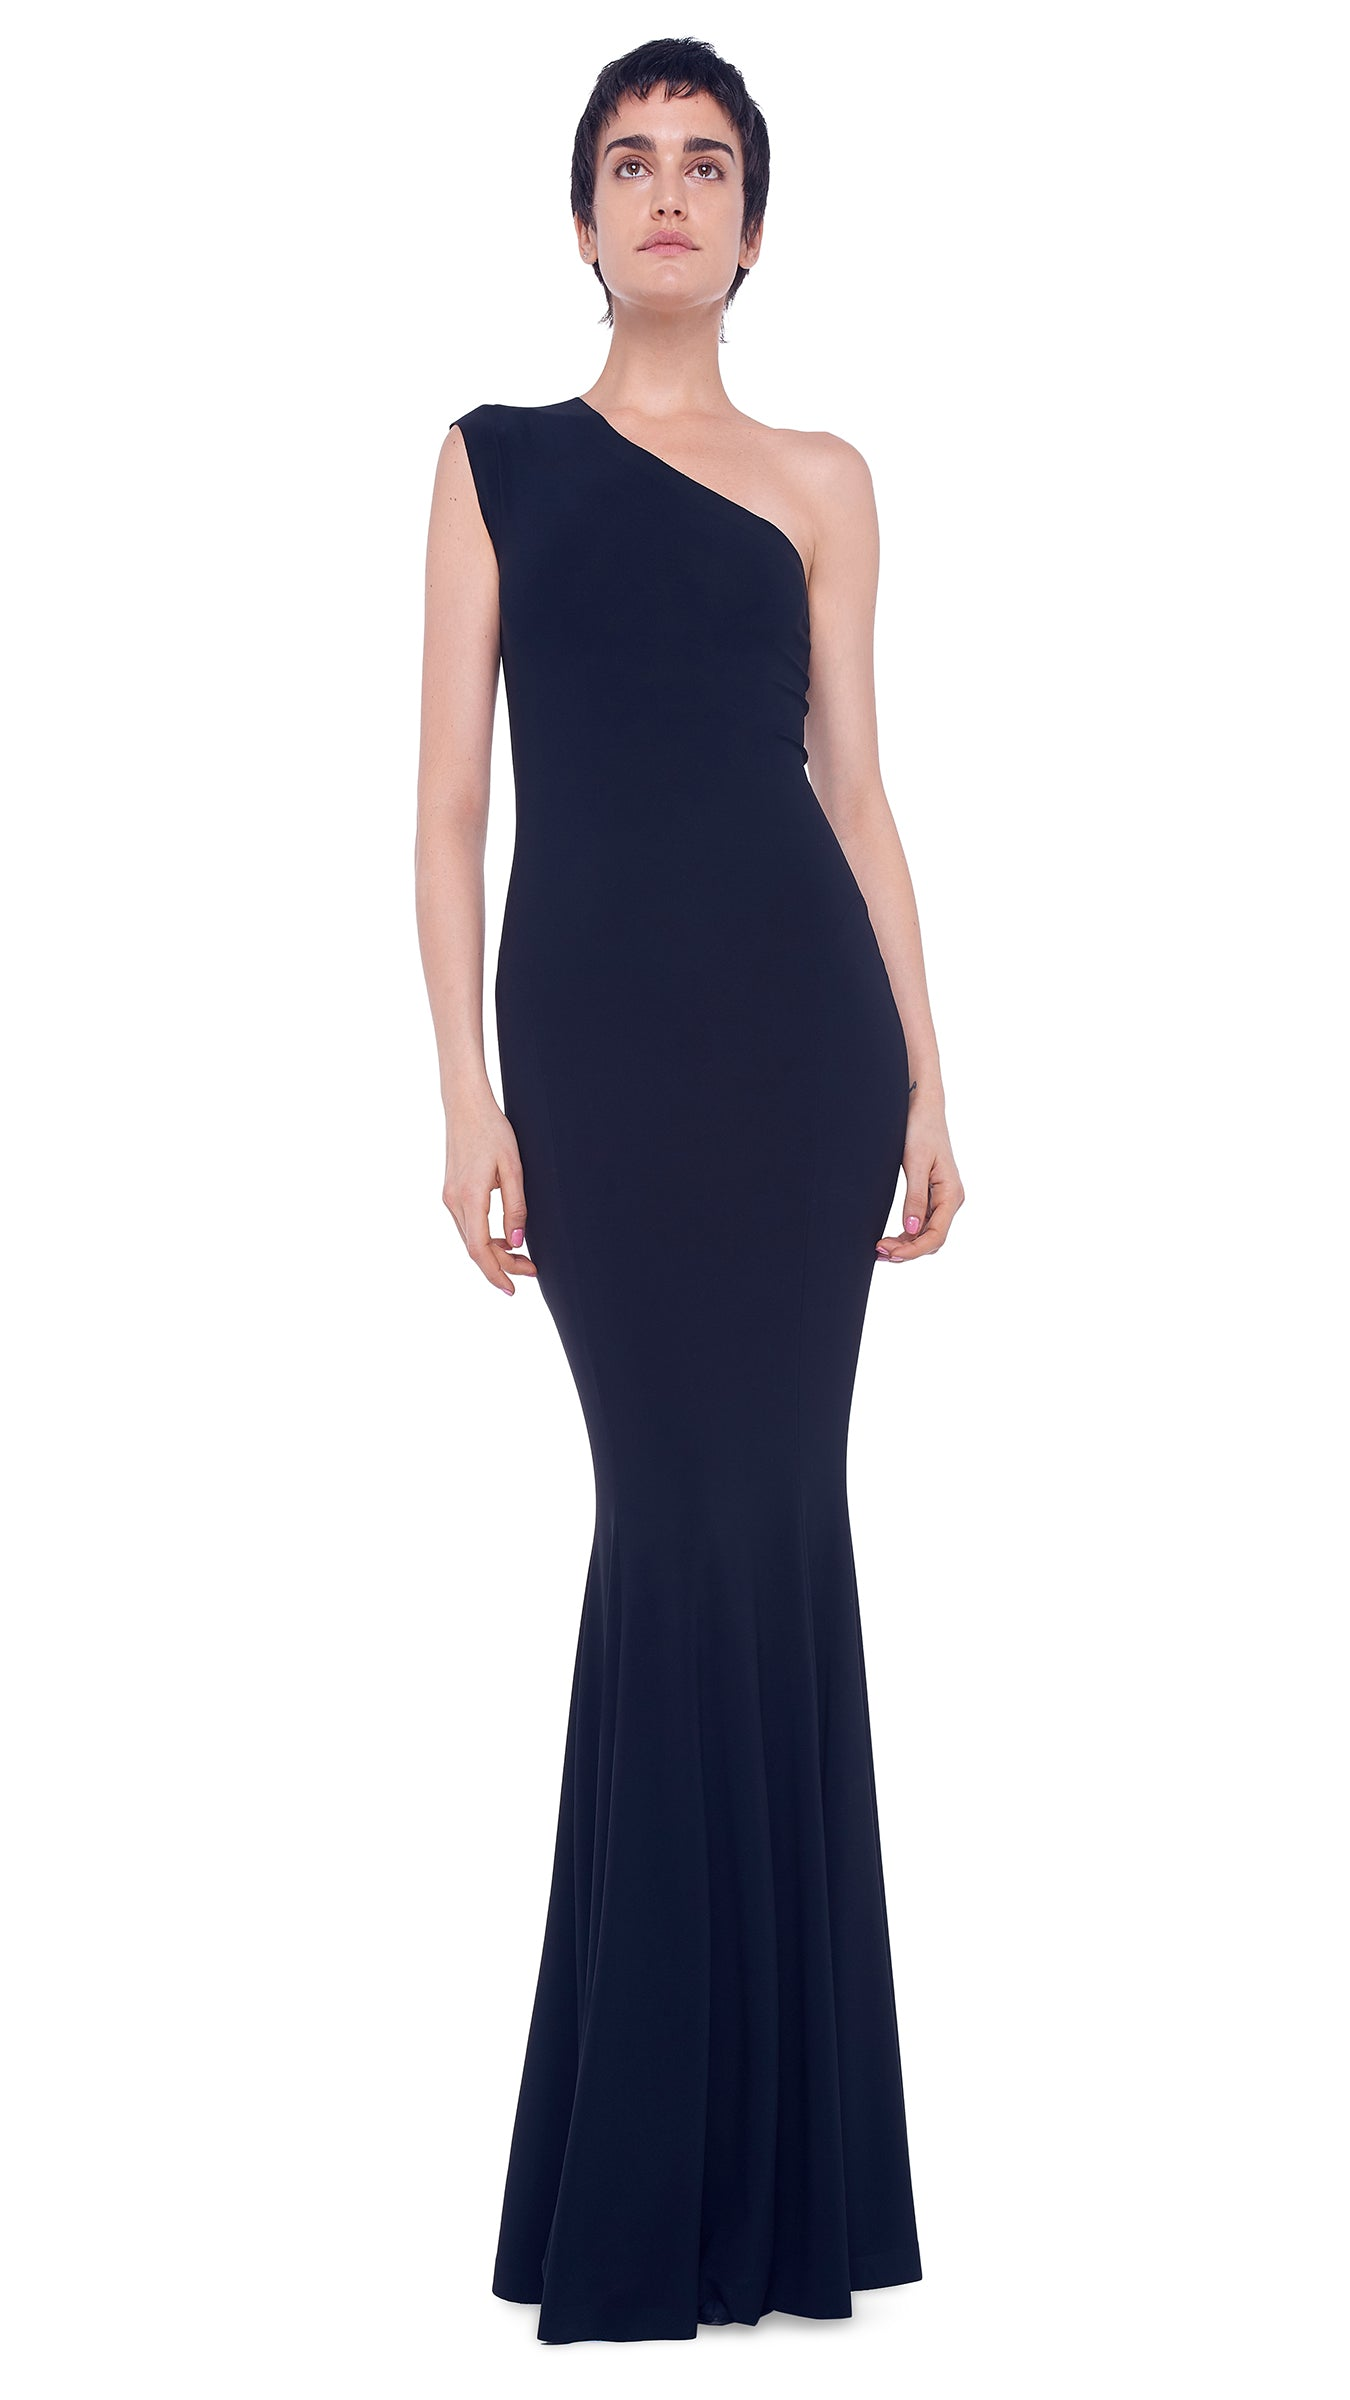 ONE SHOULDER FISHTAIL GOWN - 1